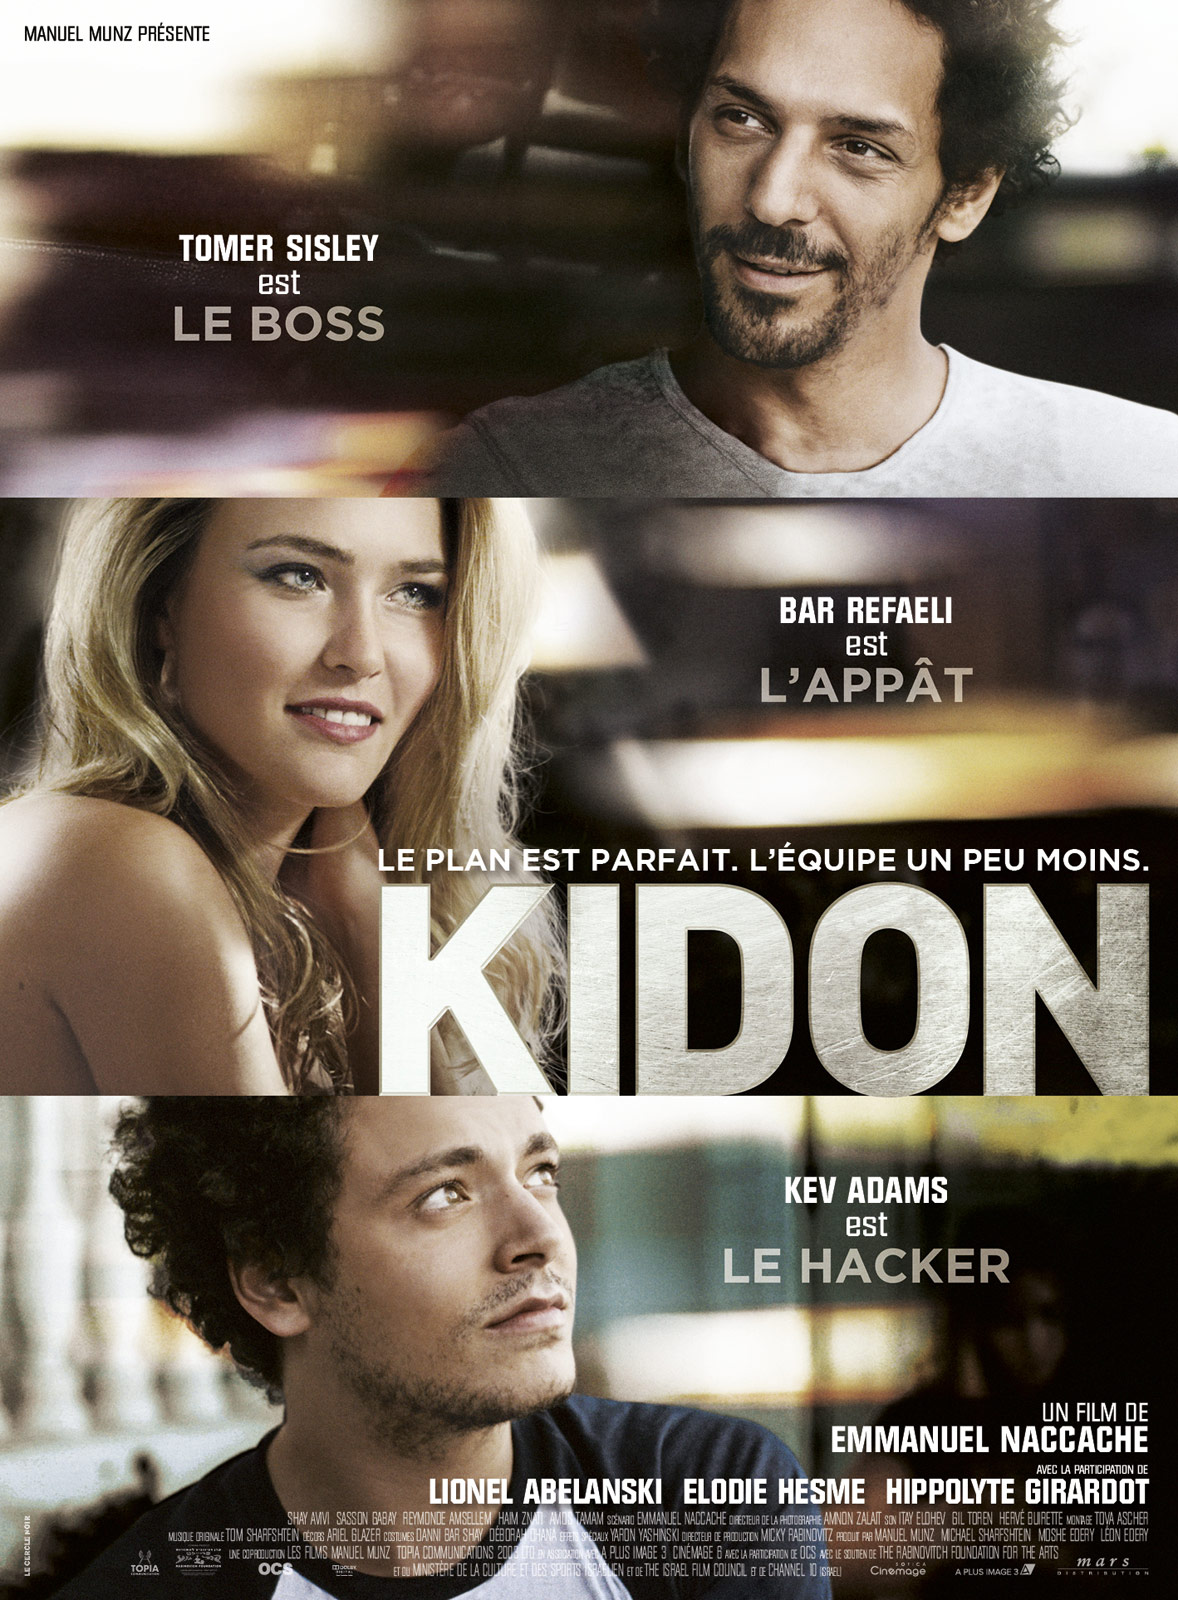 Telecharger Kidon FRENCH BDRIP Gratuitement